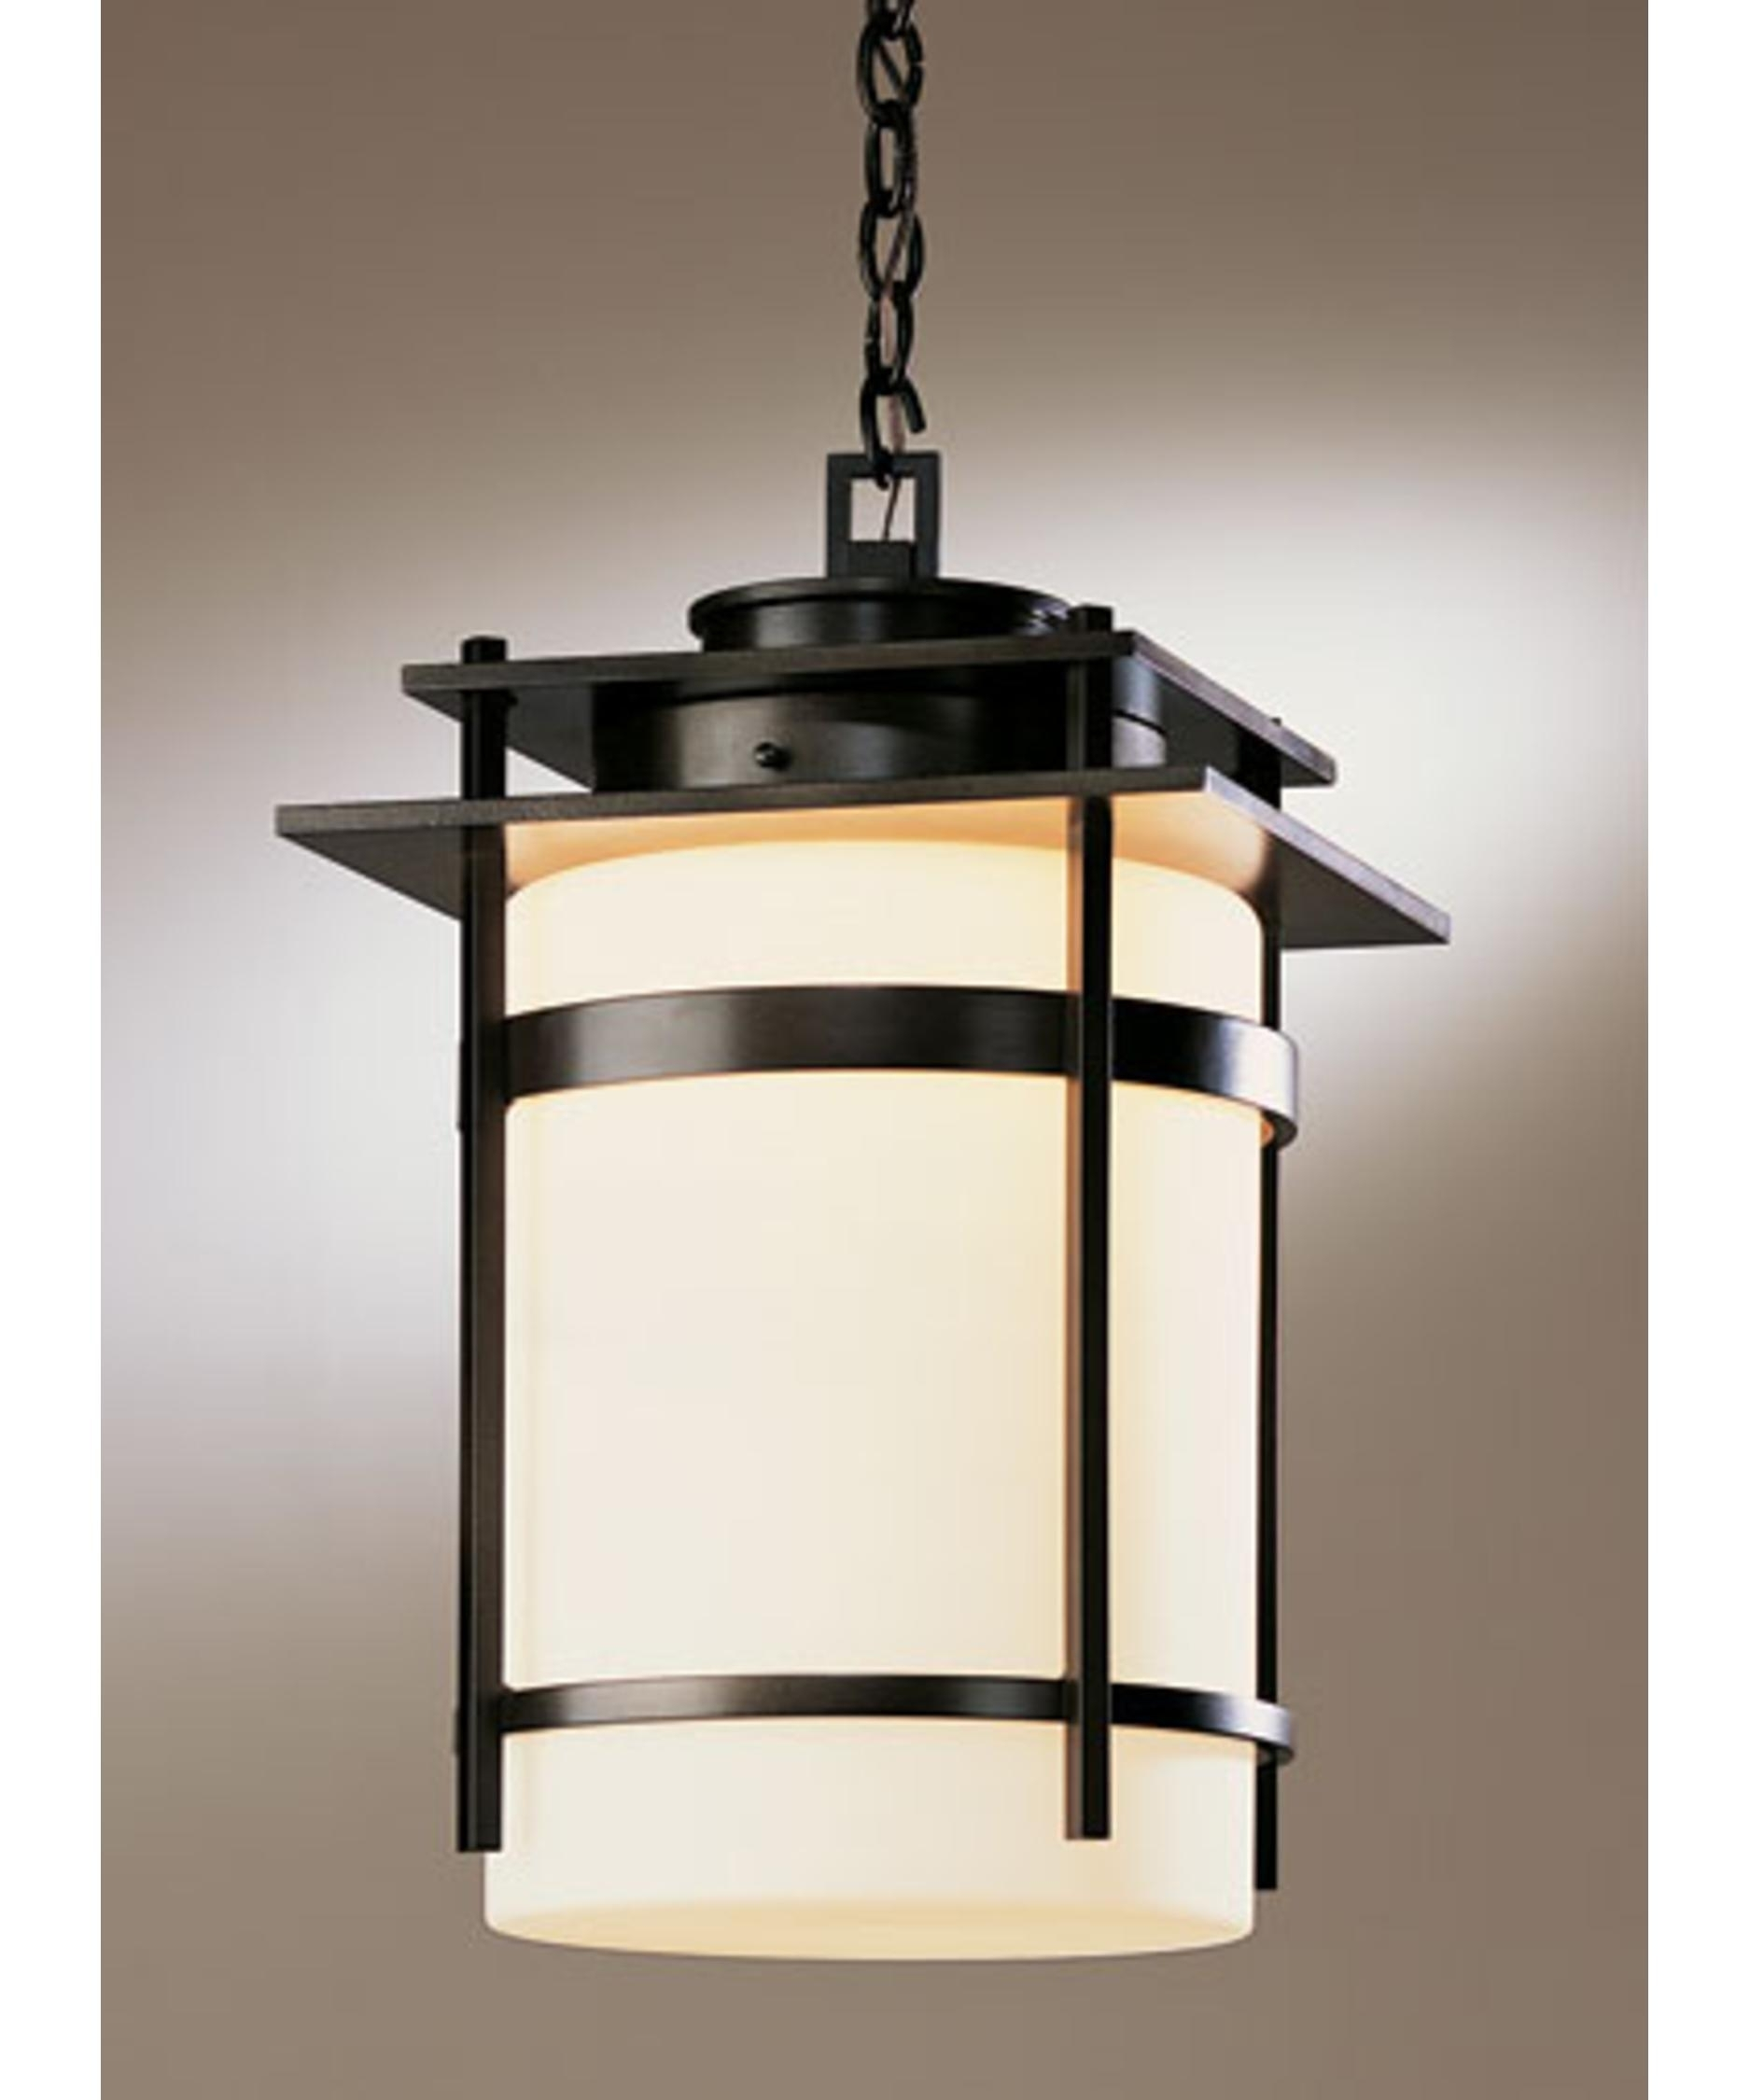 Fixtures Light : Cheap Gas Lantern Light Fixtures , Hanover Lantern Within Outdoor Hanging Lights Masters (View 3 of 15)